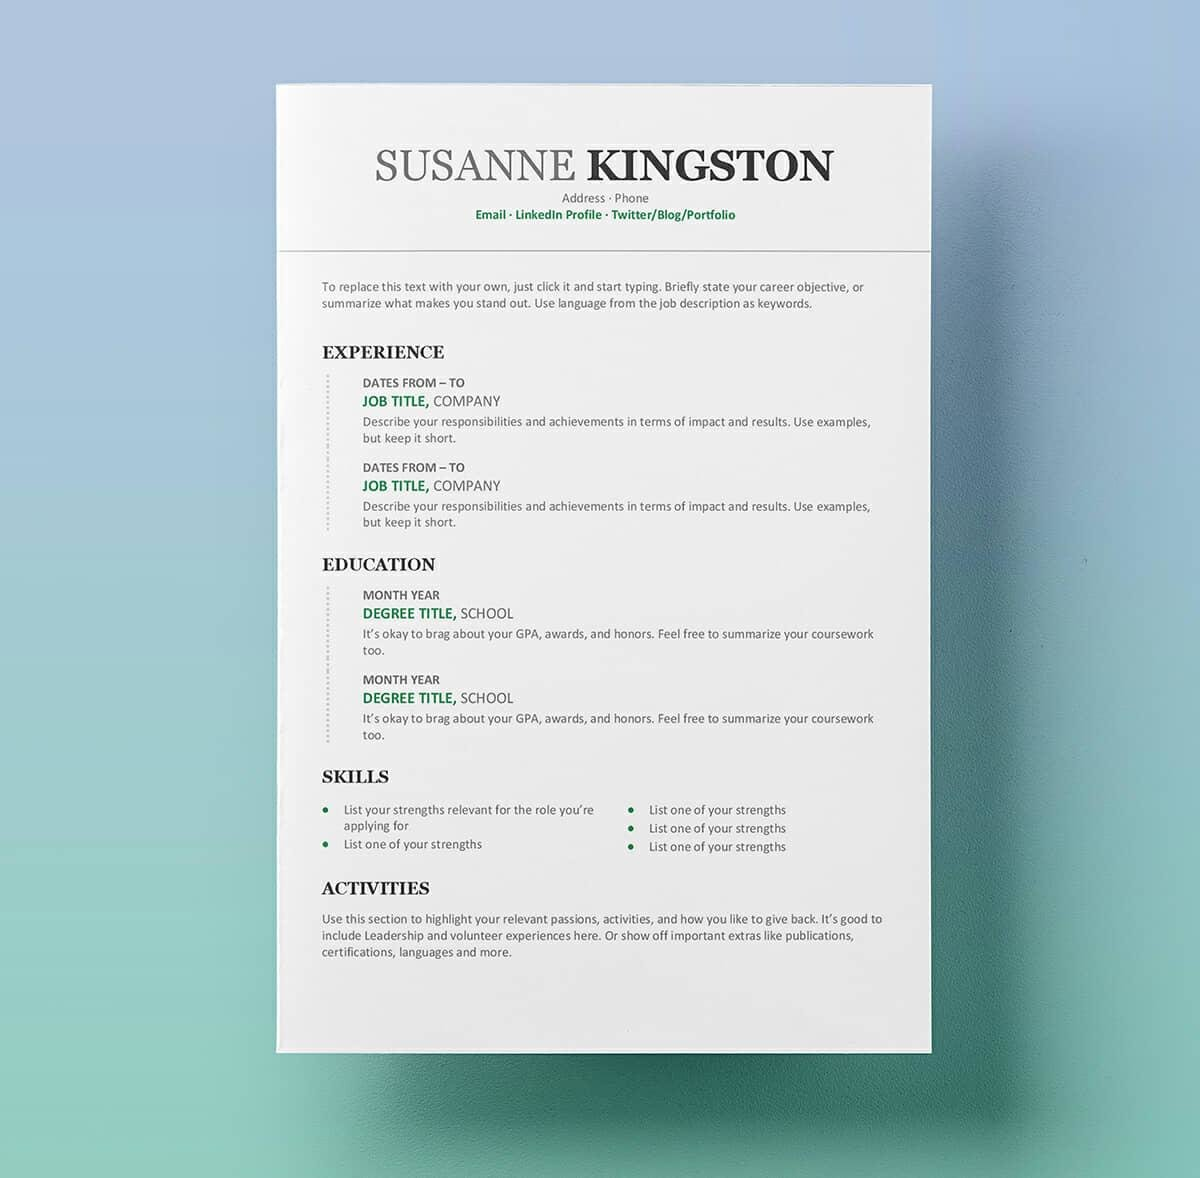 resume templates for microsoft word free does have decent format bleach restaurant server Resume Does Word Have Resume Templates